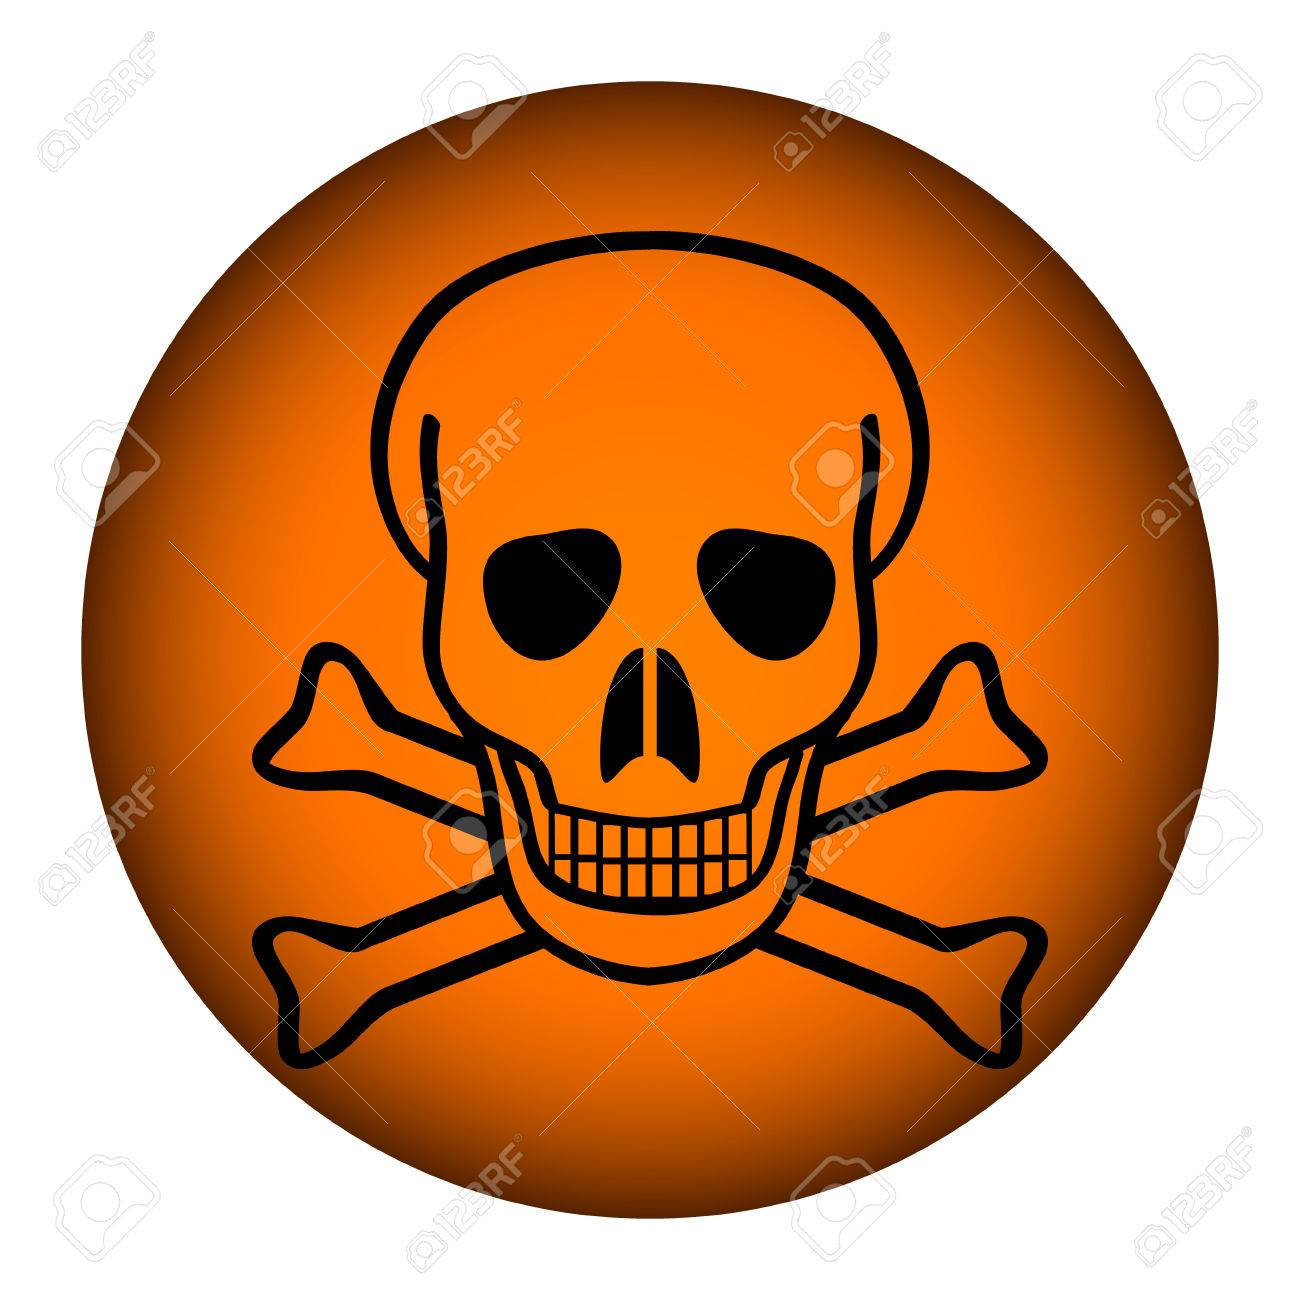 Deadly danger sign button on white illustration. Stock Vector - 26708278